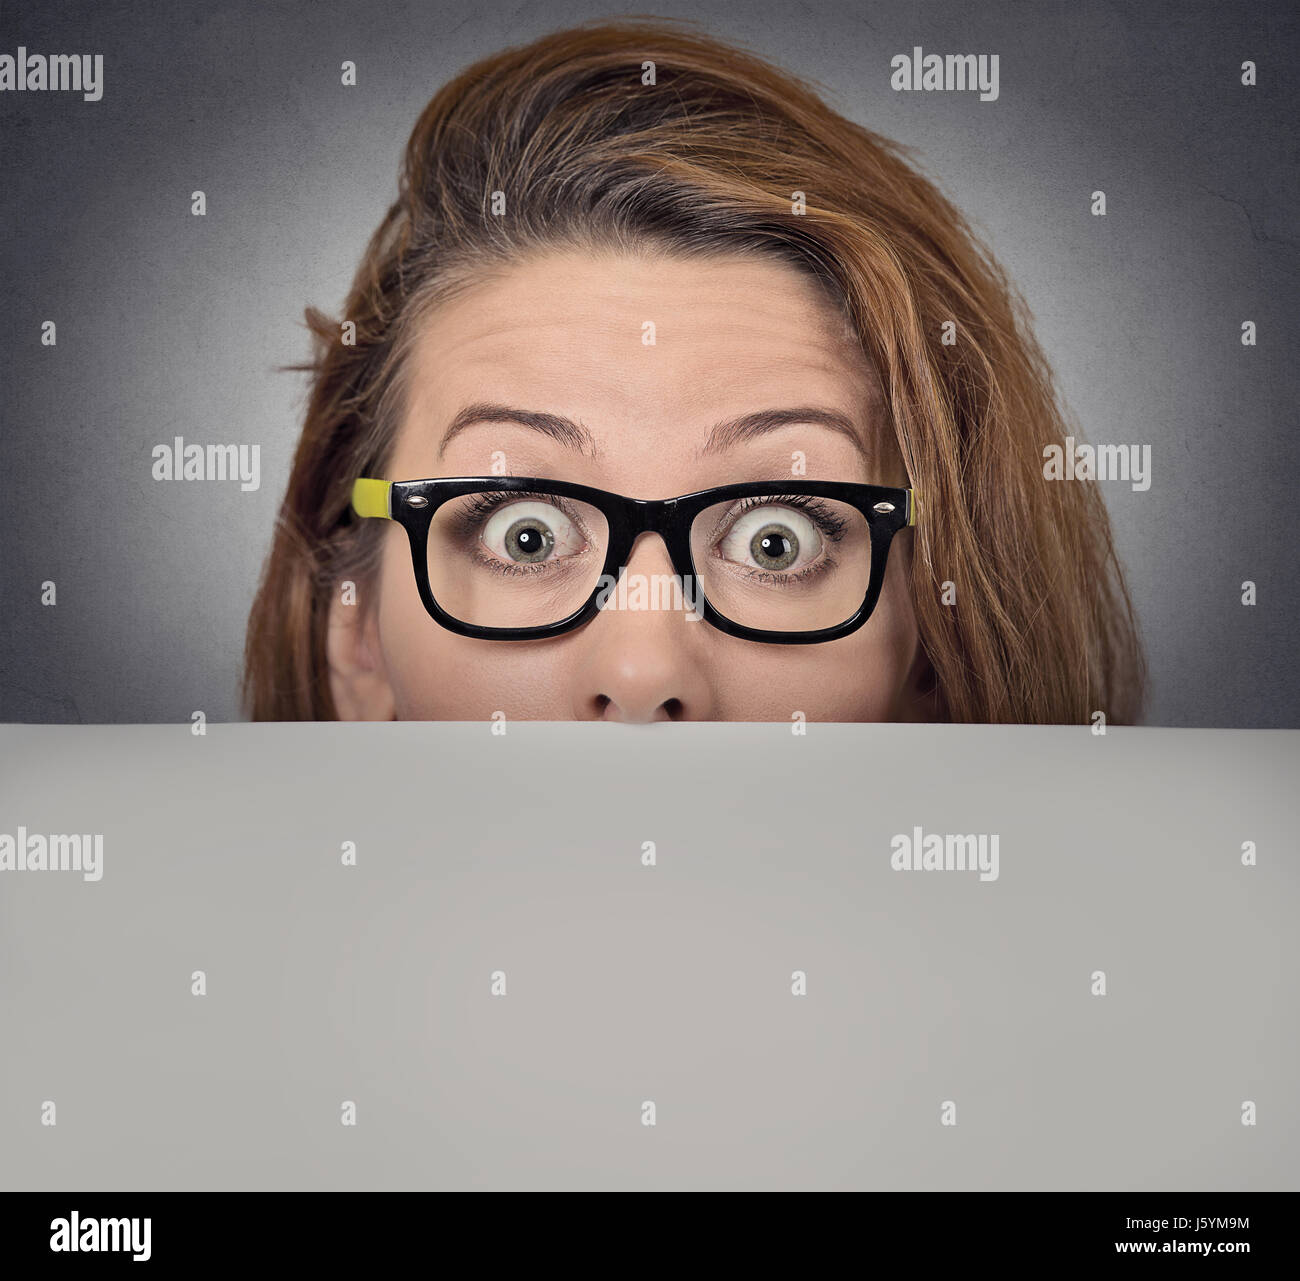 Banner sign woman peeking over edge of blank empty paper billboard. Beautiful young woman with glasses looking surprised - Stock Image